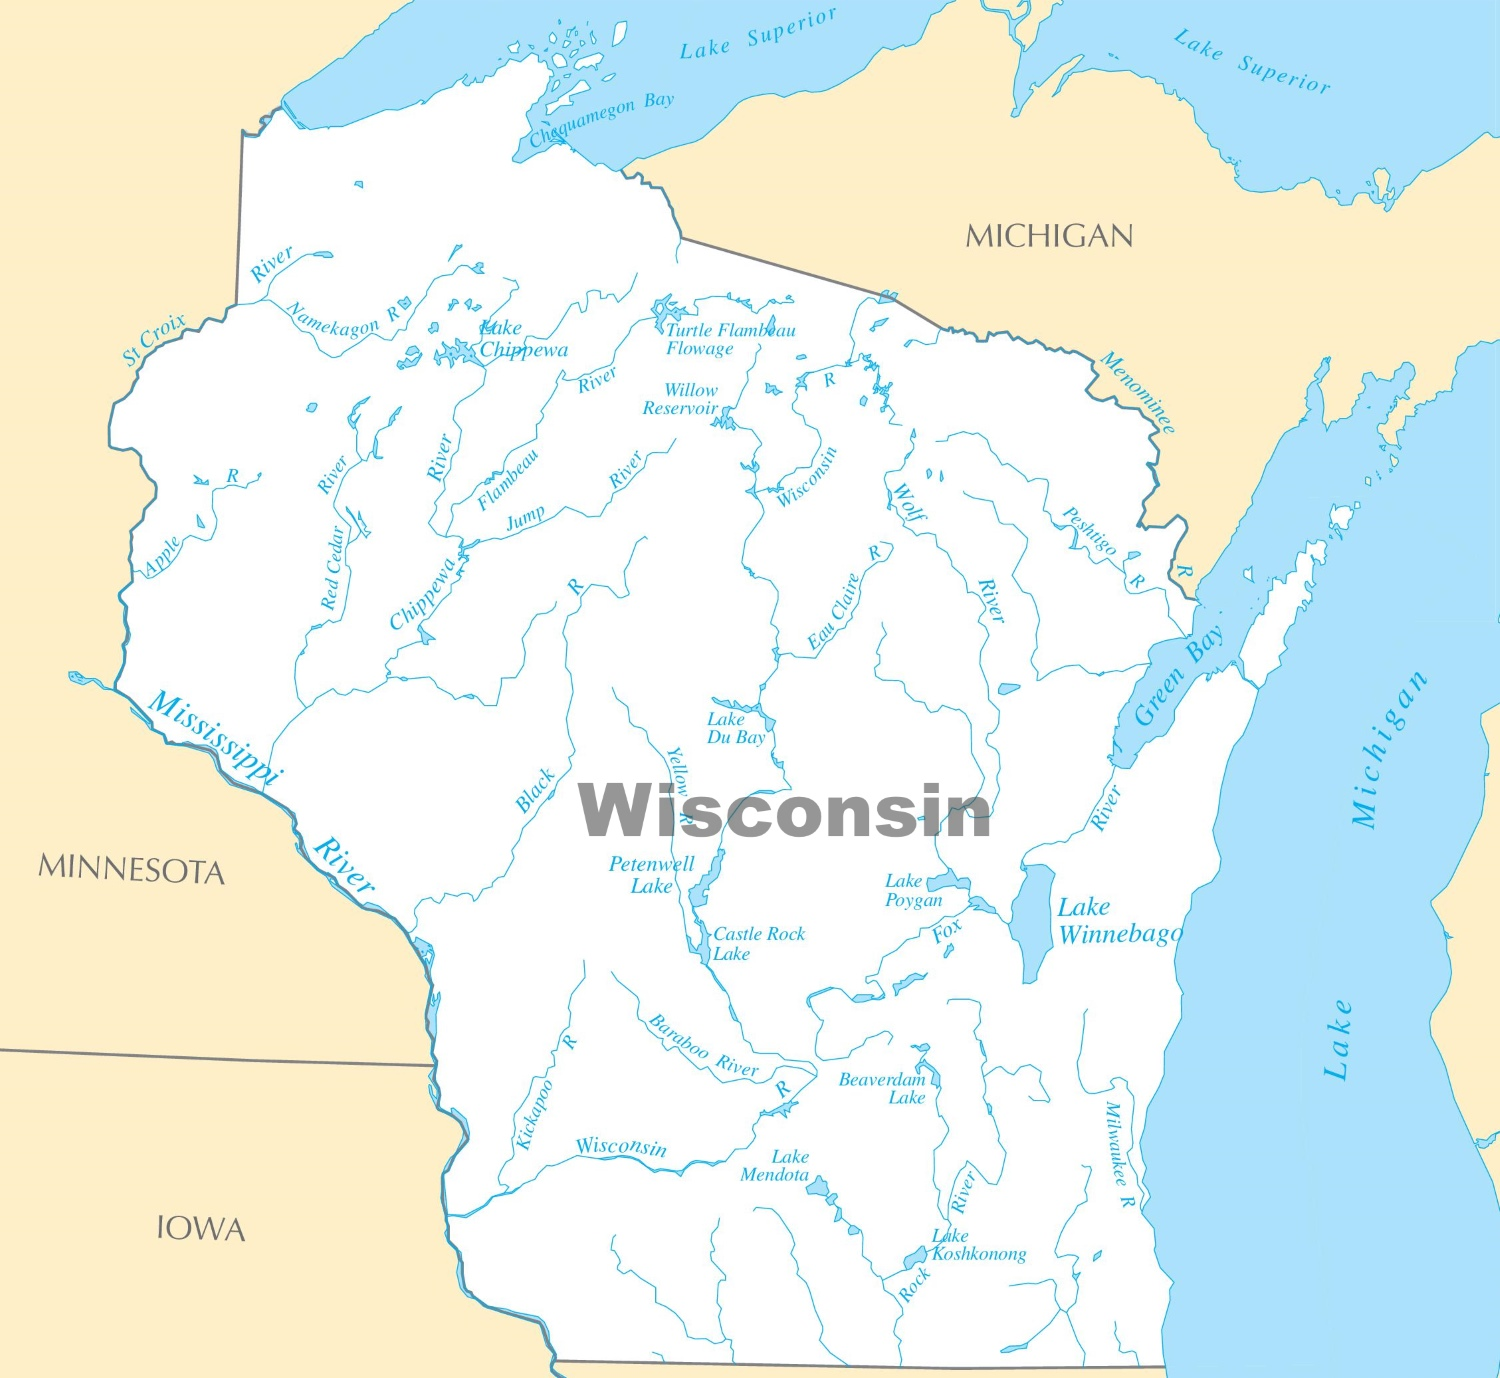 Wisconsin State Maps USA Maps Of Wisconsin WI - Map of northern wisconsin lakes